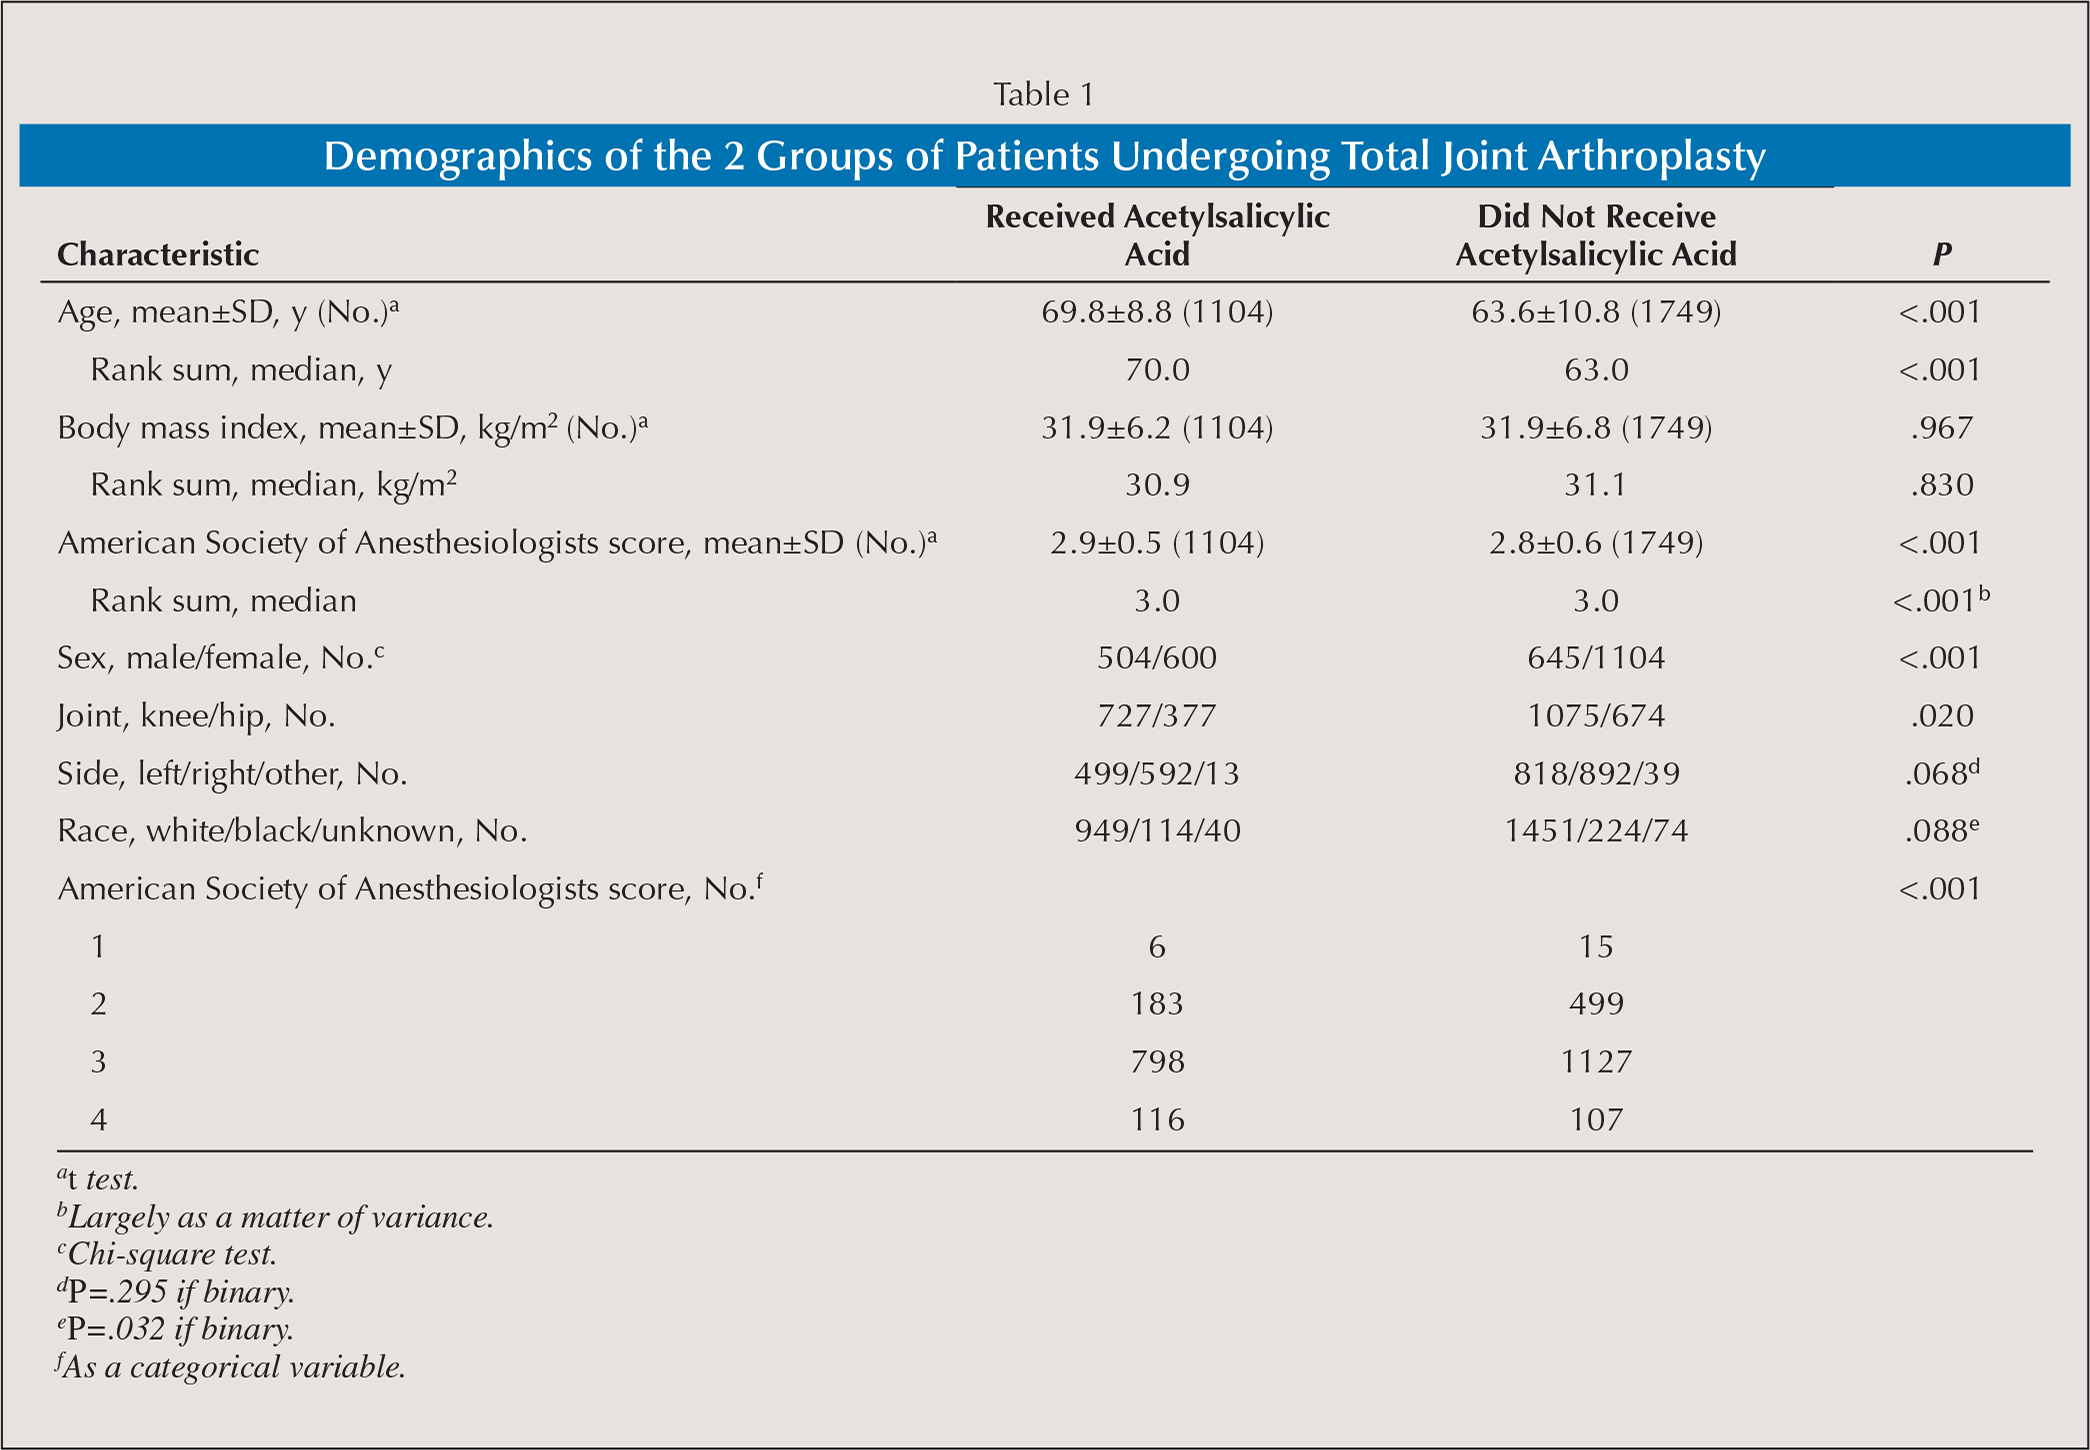 Demographics of the 2 Groups of Patients Undergoing Total Joint Arthroplasty